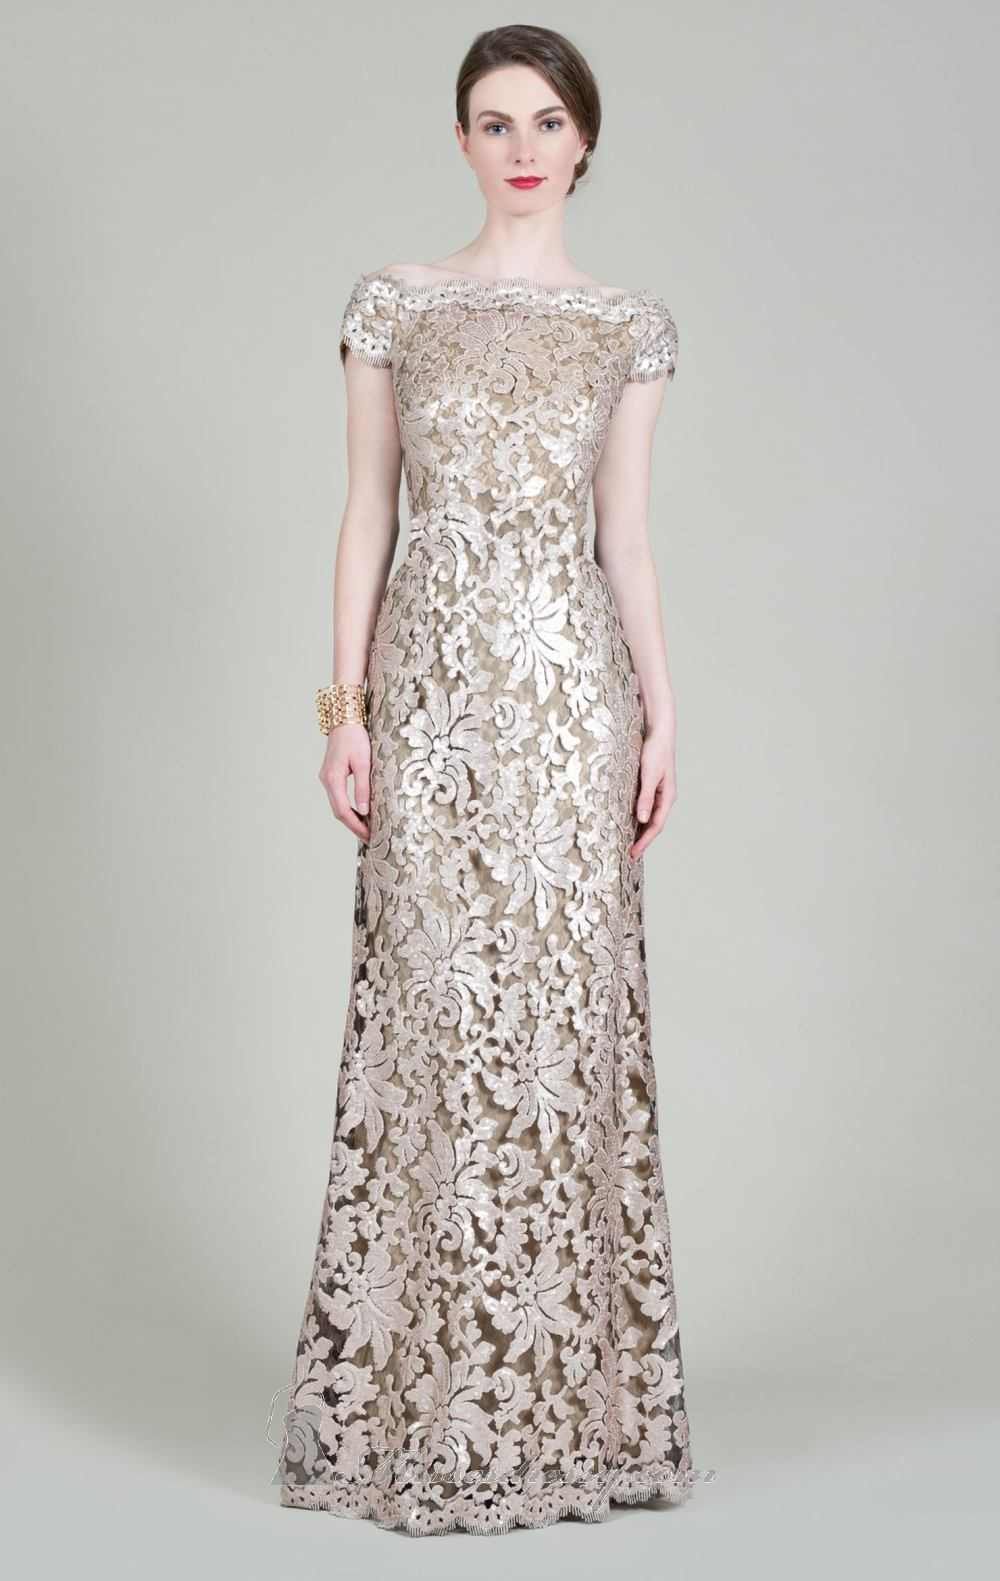 Non Traditional Wedding Dress Lace : Non traditional wedding dresses